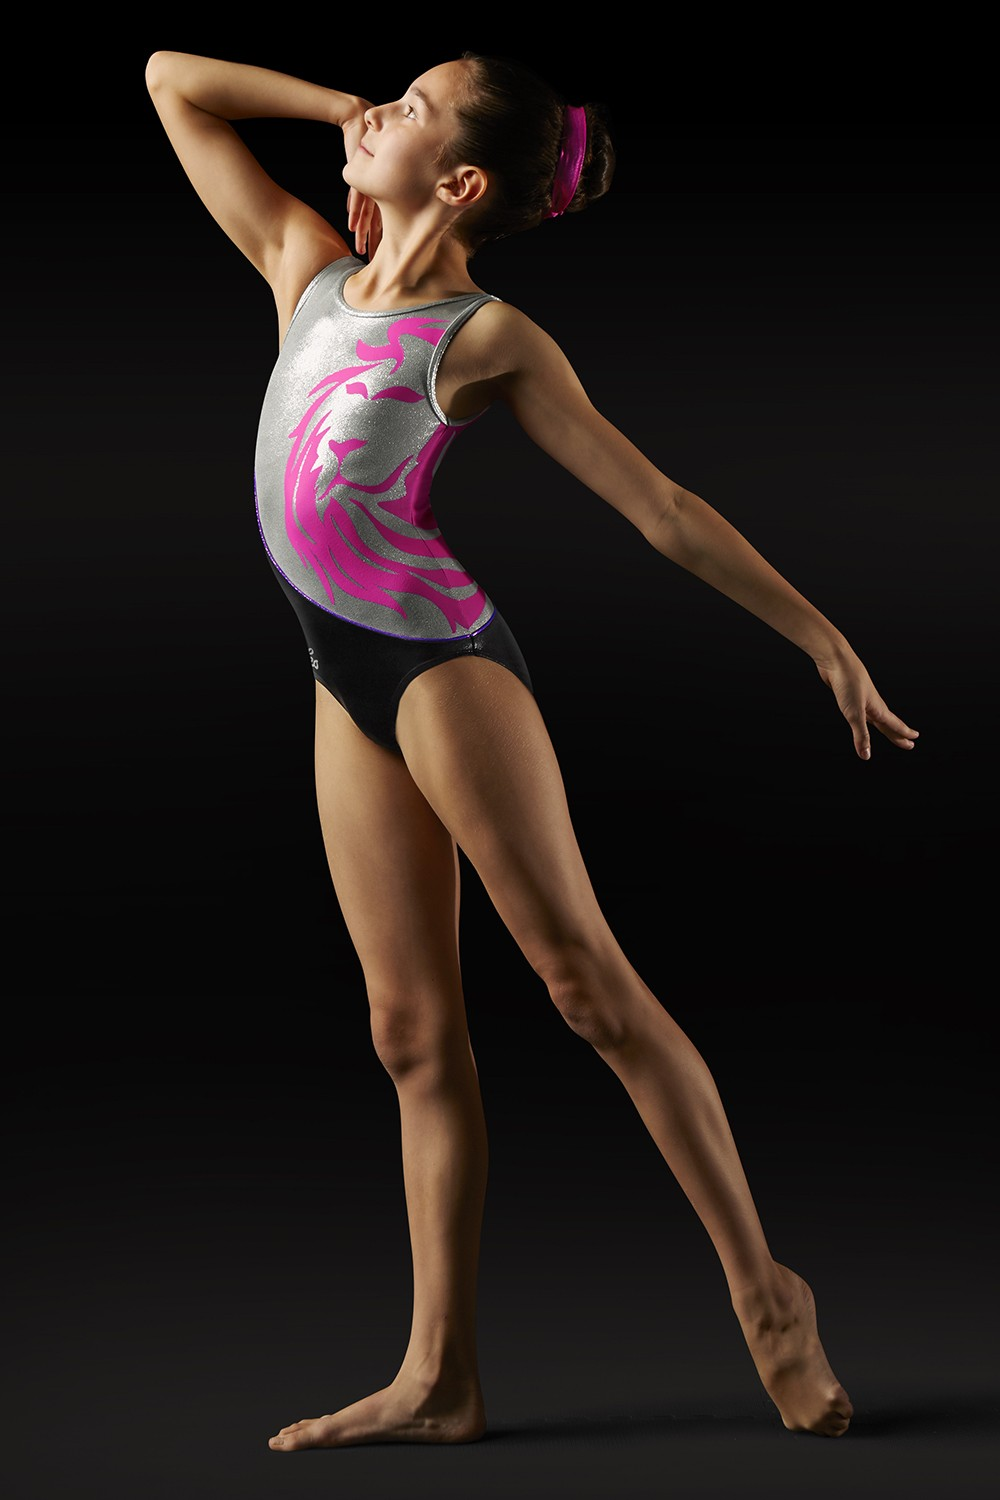 Leo Lion Tank - Girls Girl's Gymnastics Leotards